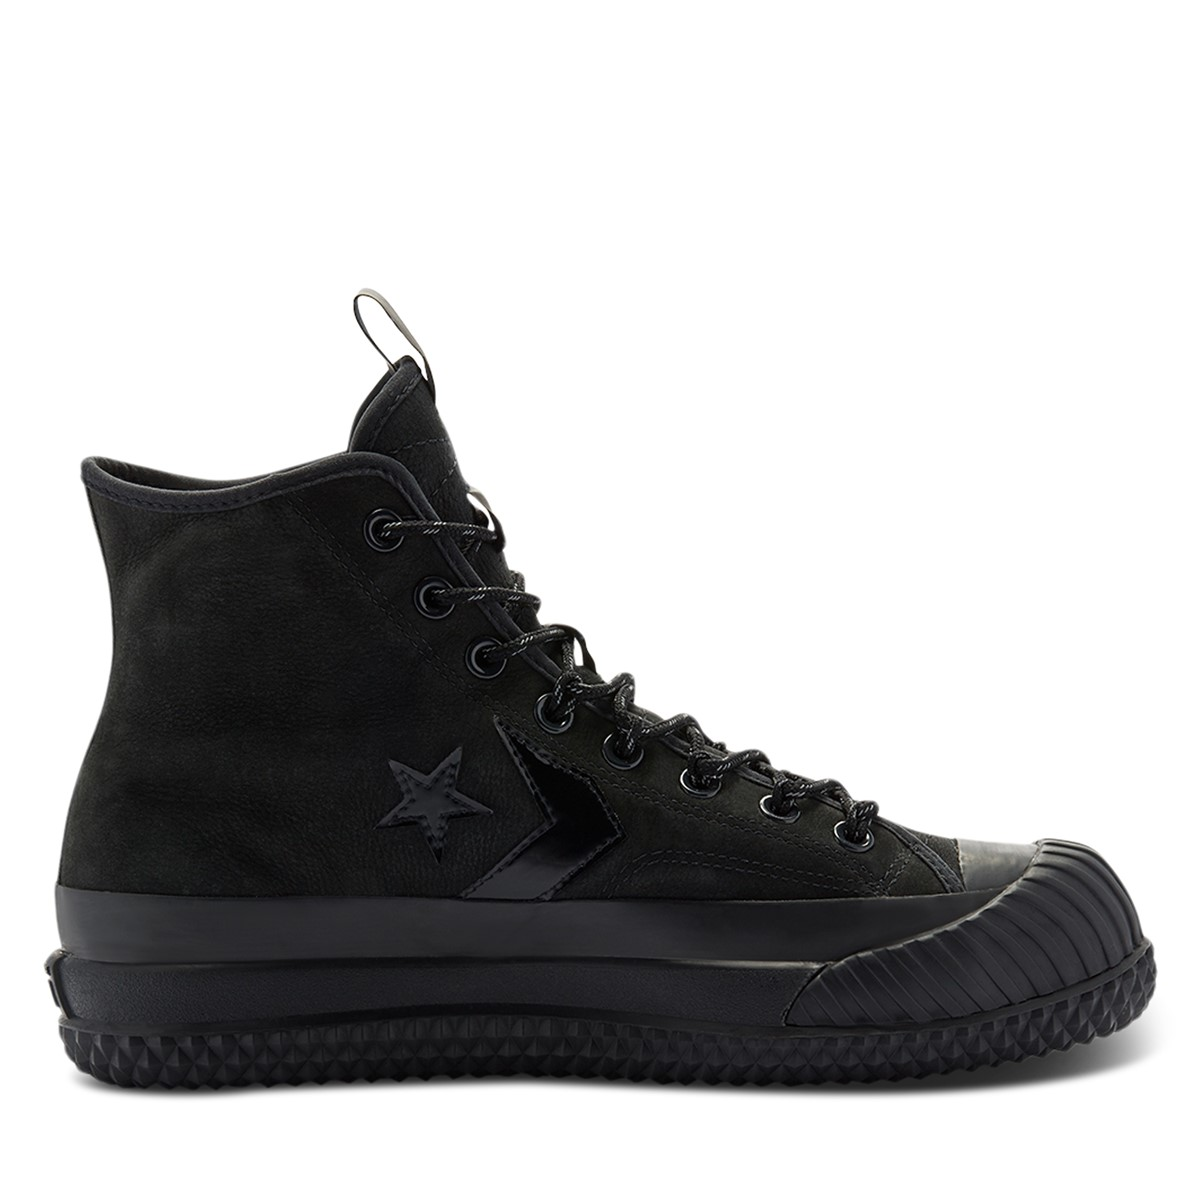 Men's Bosey MC GORE-TEX Sneaker Boots in Black